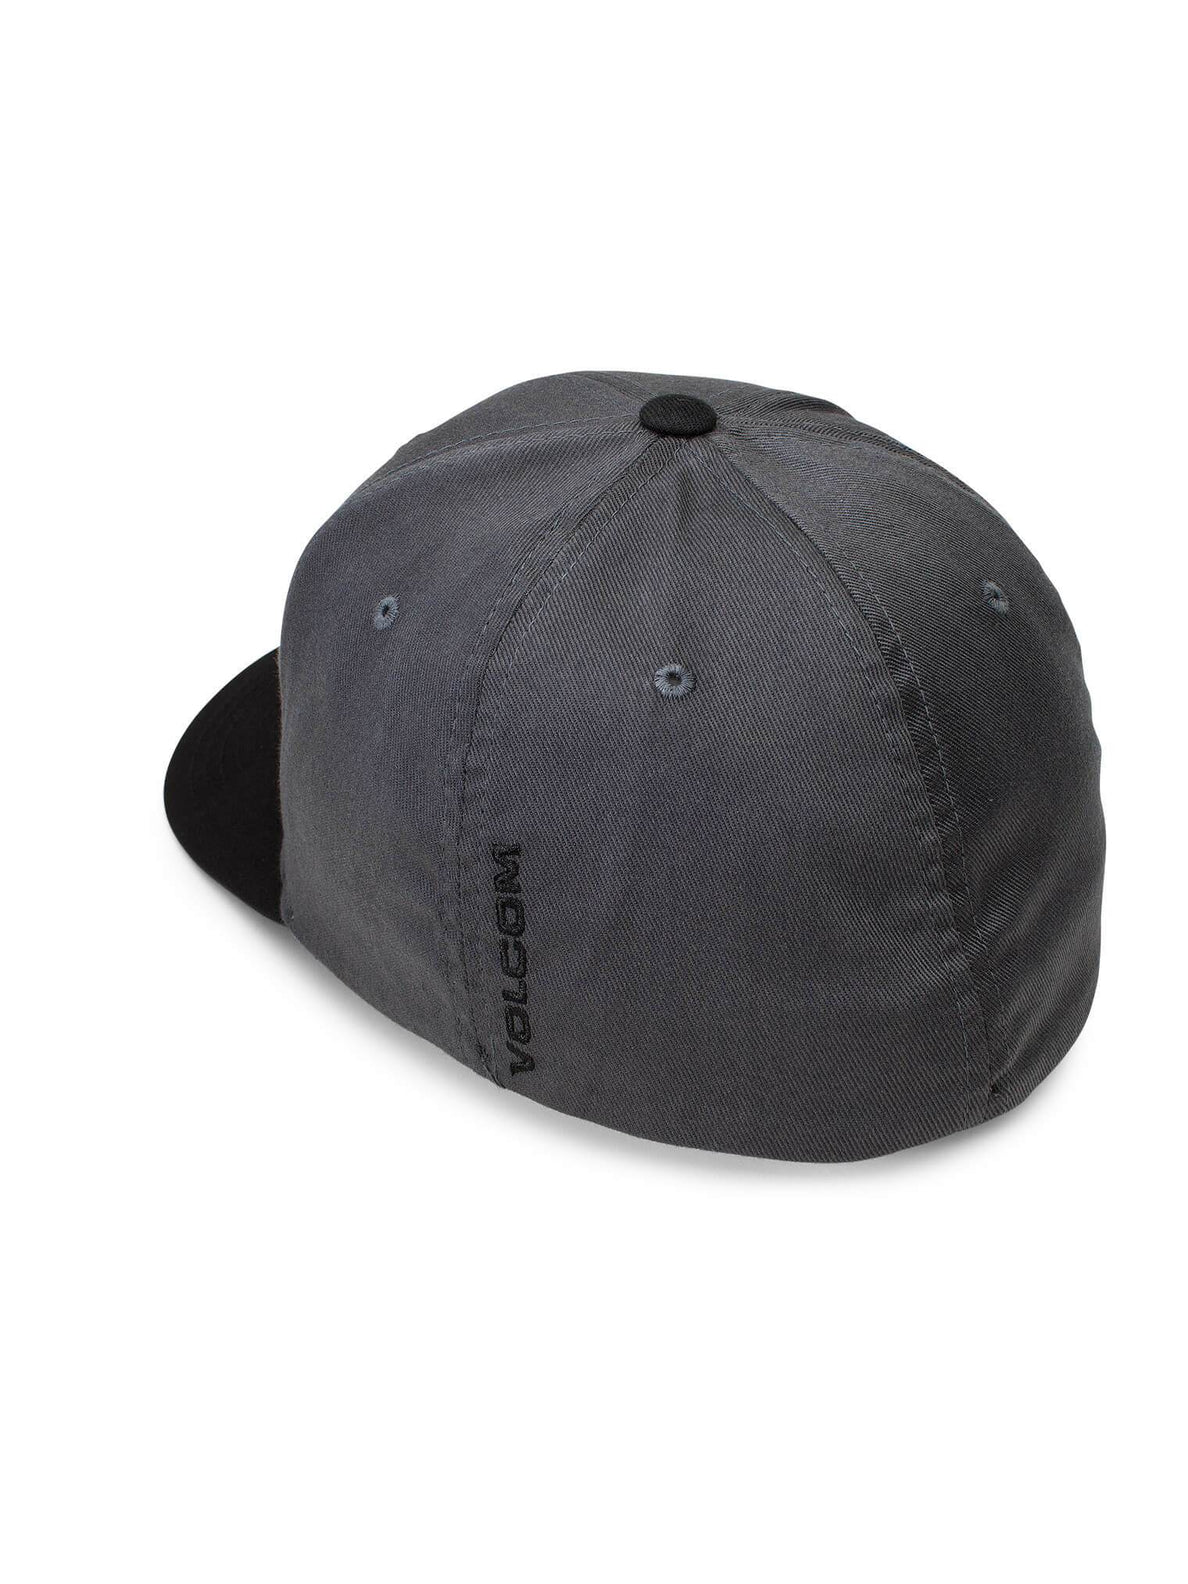 Full Stone Xfit Hat In Asphalt Black, Back View